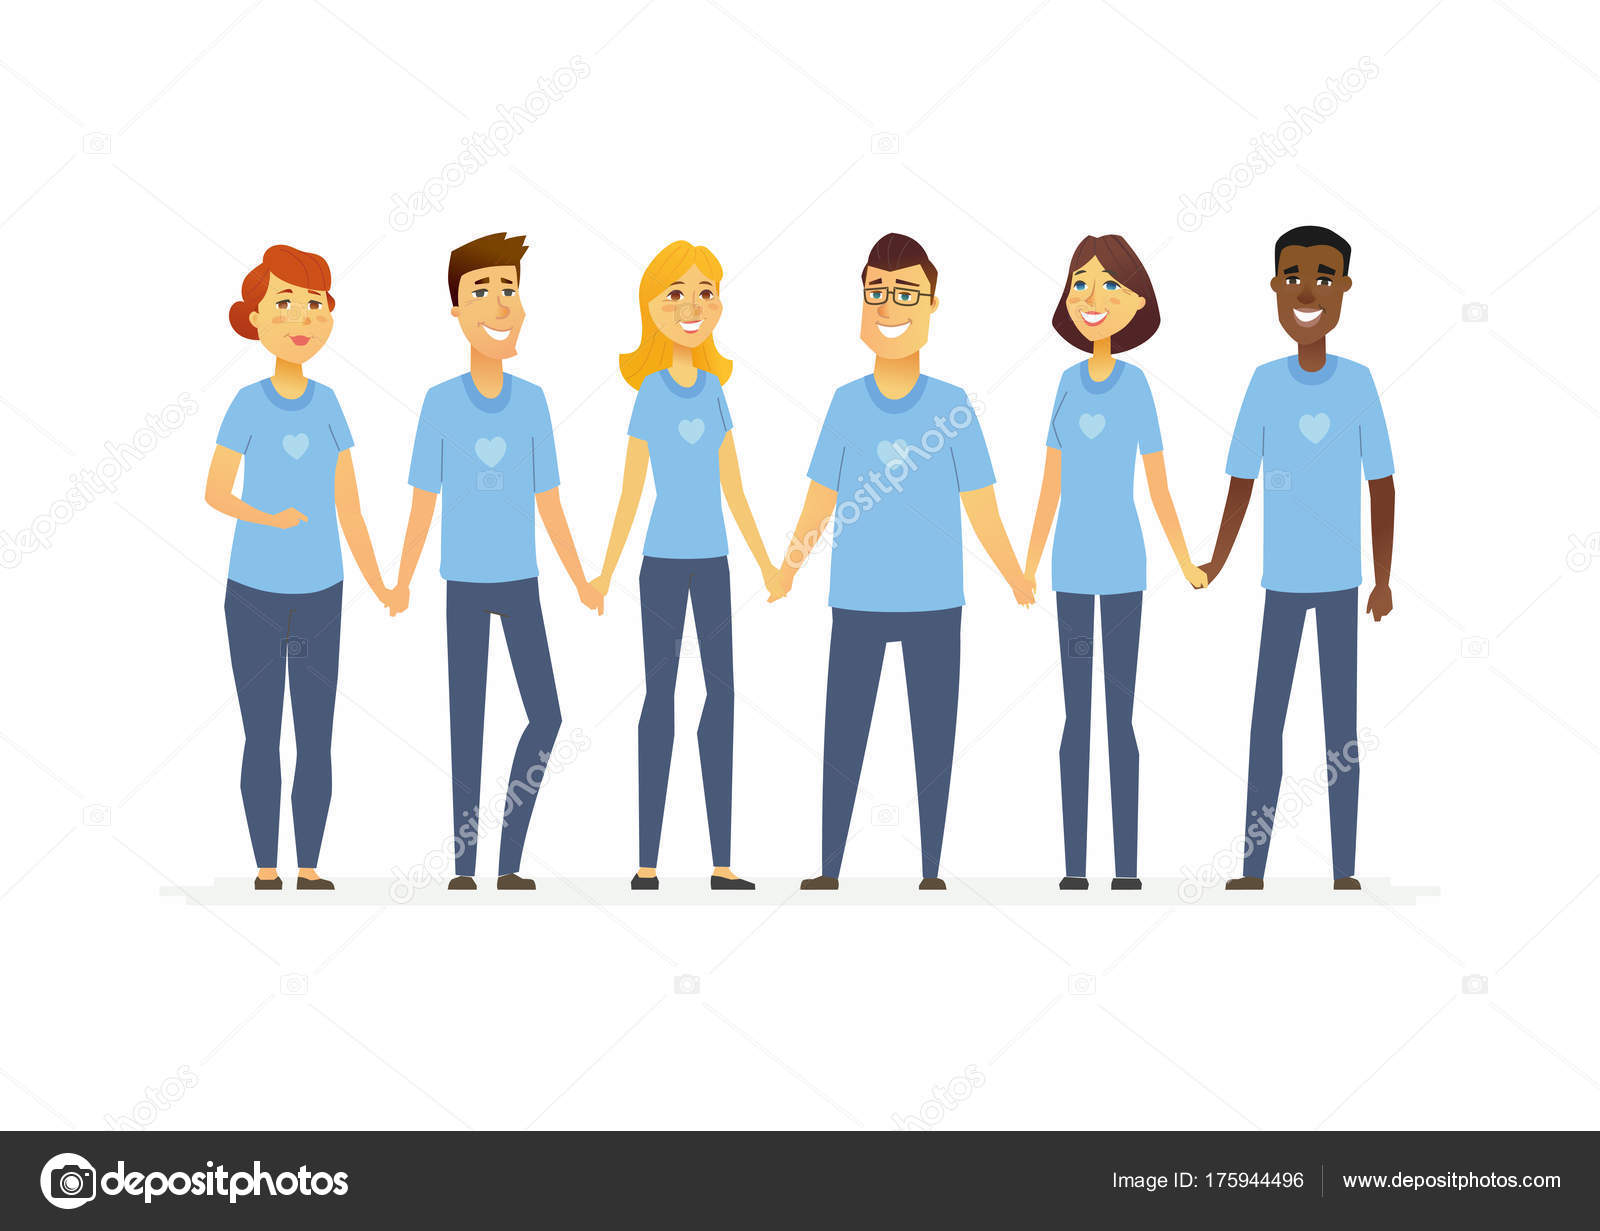 happy volunteers holding hands cartoon people characters isolated rh depositphotos com Black Cartoon People Holding Hands People Holding Hands with World